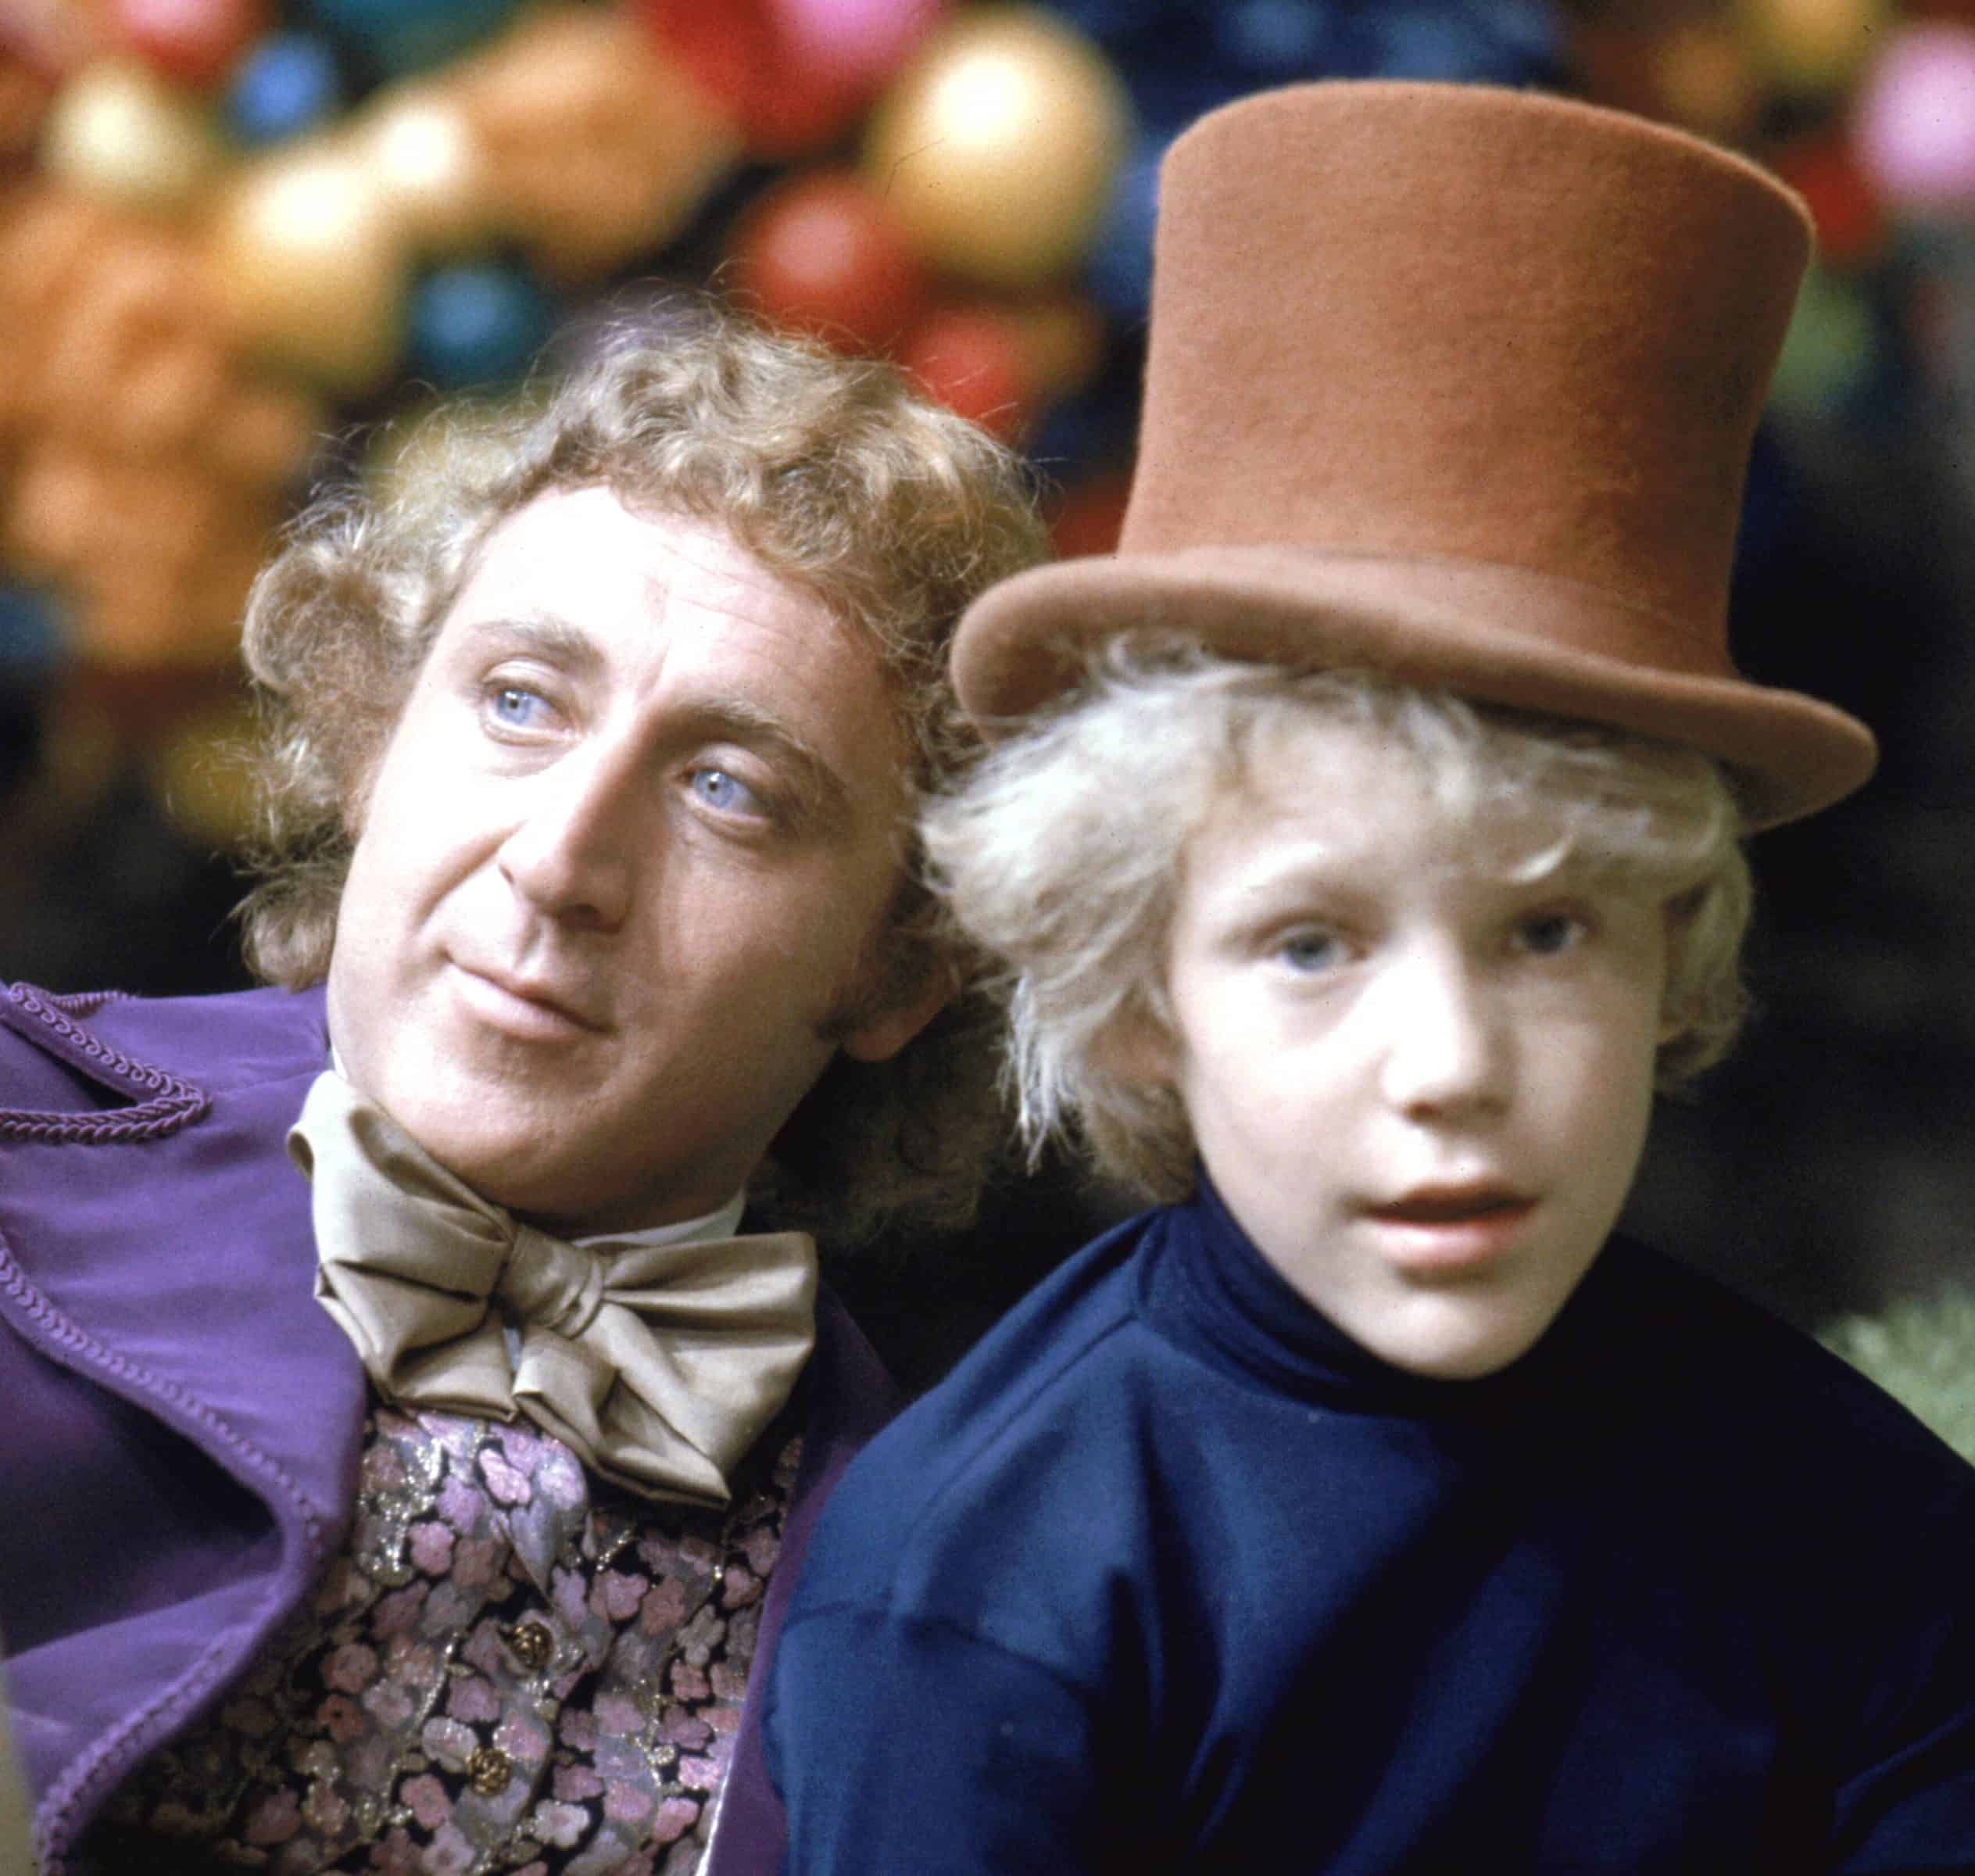 charlie 4 e1568556283451 28 Things You Probably Never Knew About Willy Wonka And The Chocolate Factory